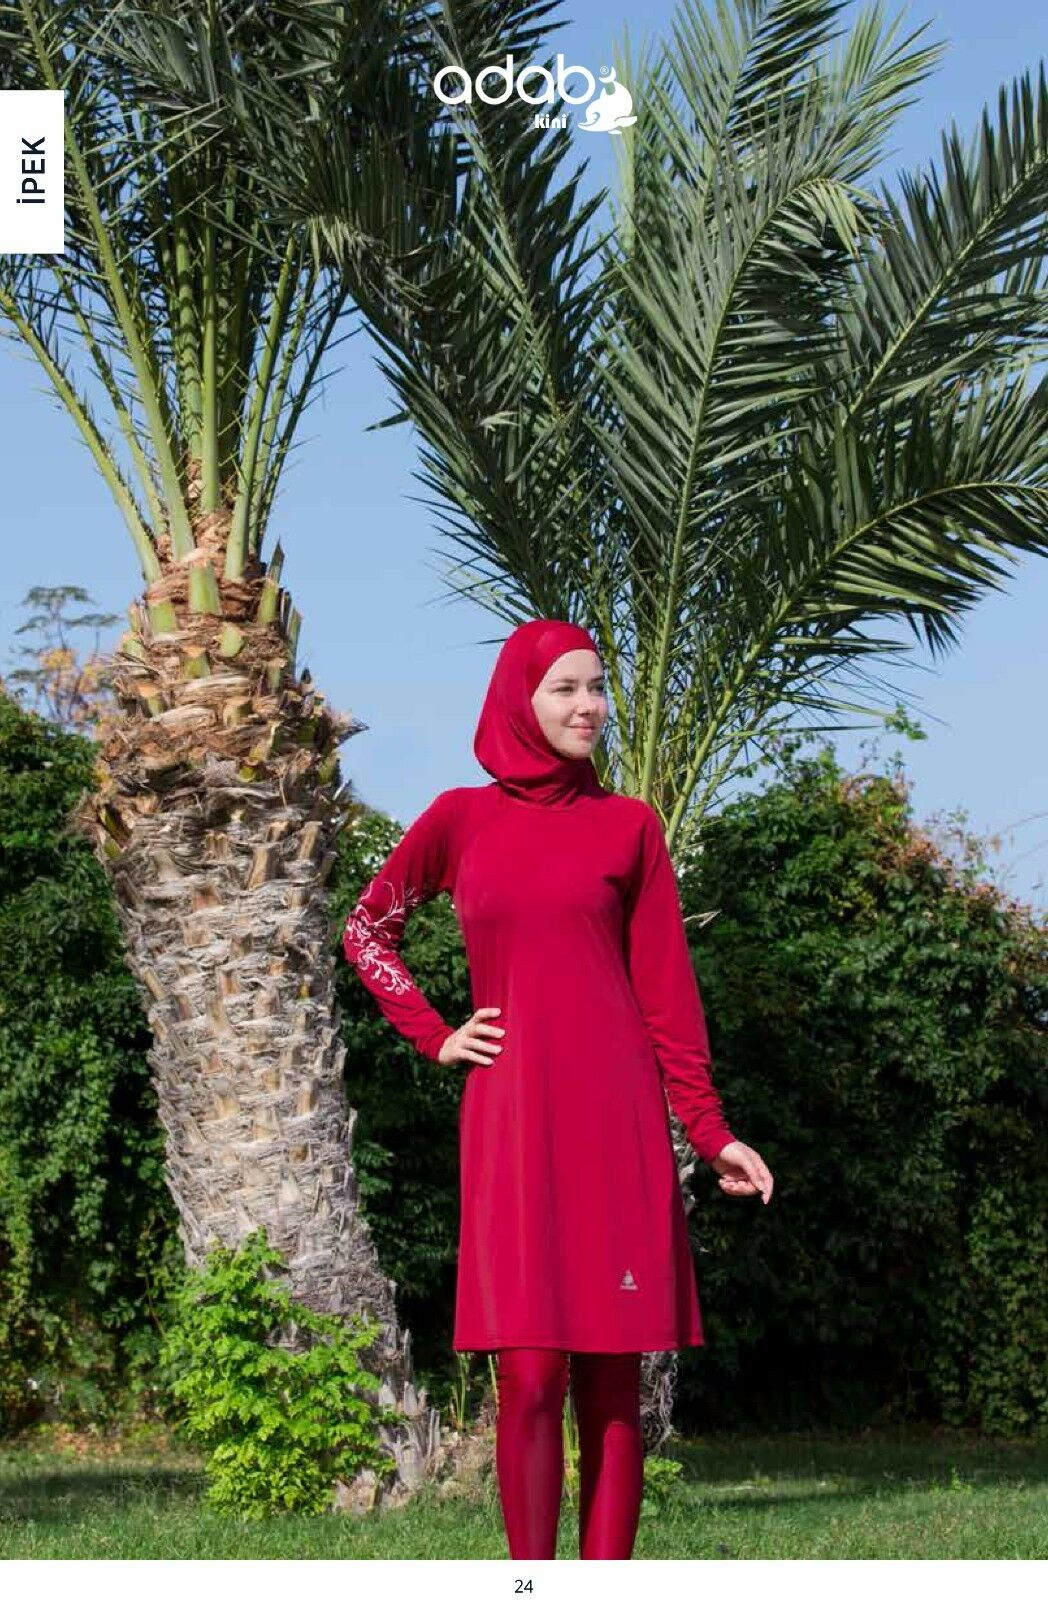 Adabkini IPEK burkini, Islamic swimsuit, bathing suit, Stretchy material, w Cap